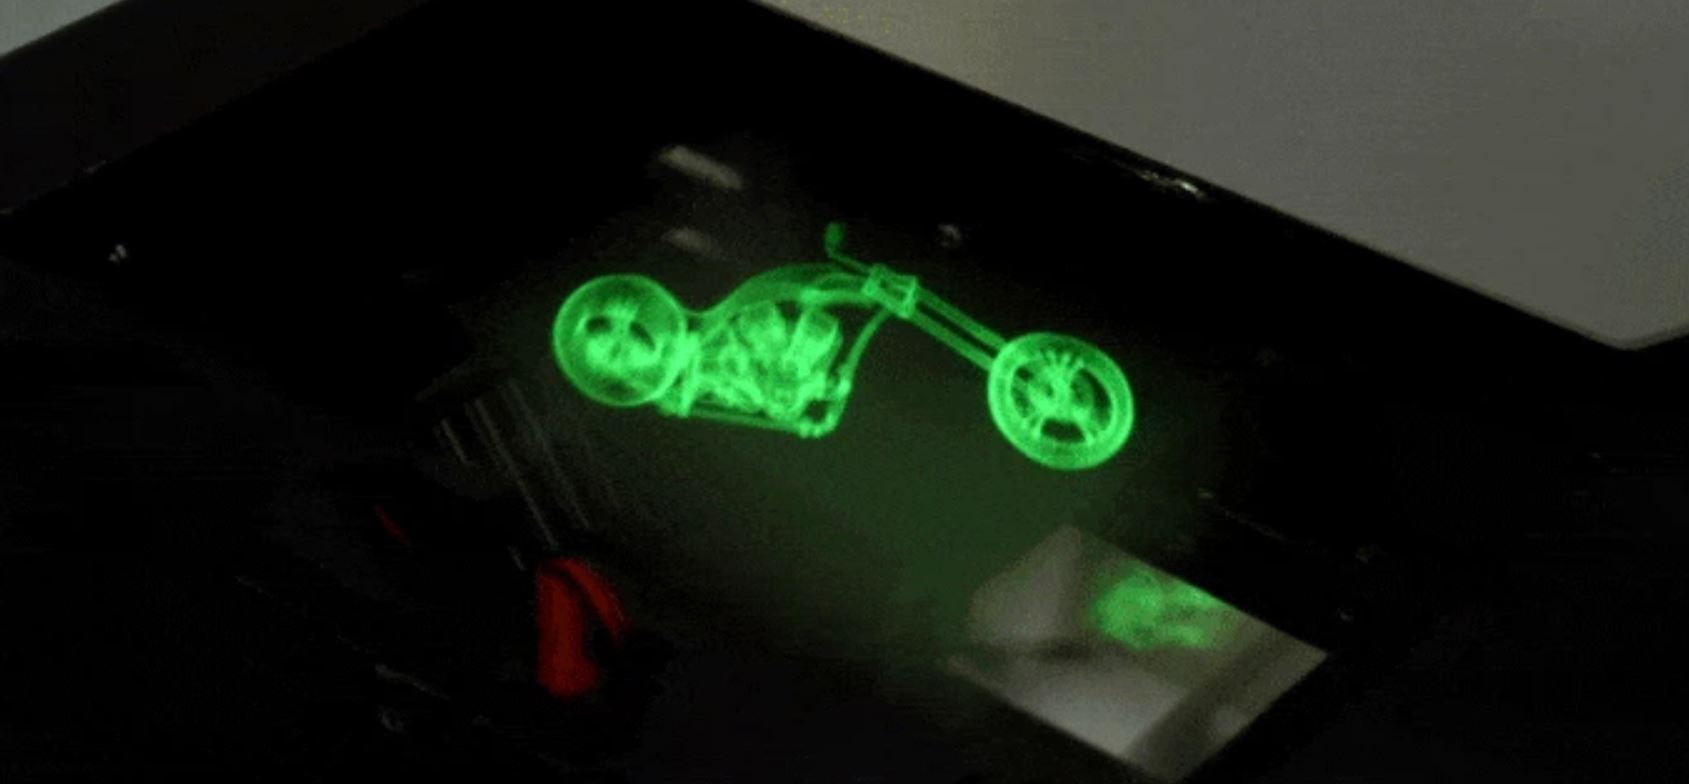 Mechanical Volumetric Displays Are Fascinating, and Lumi Is Launching One On Kickstarter